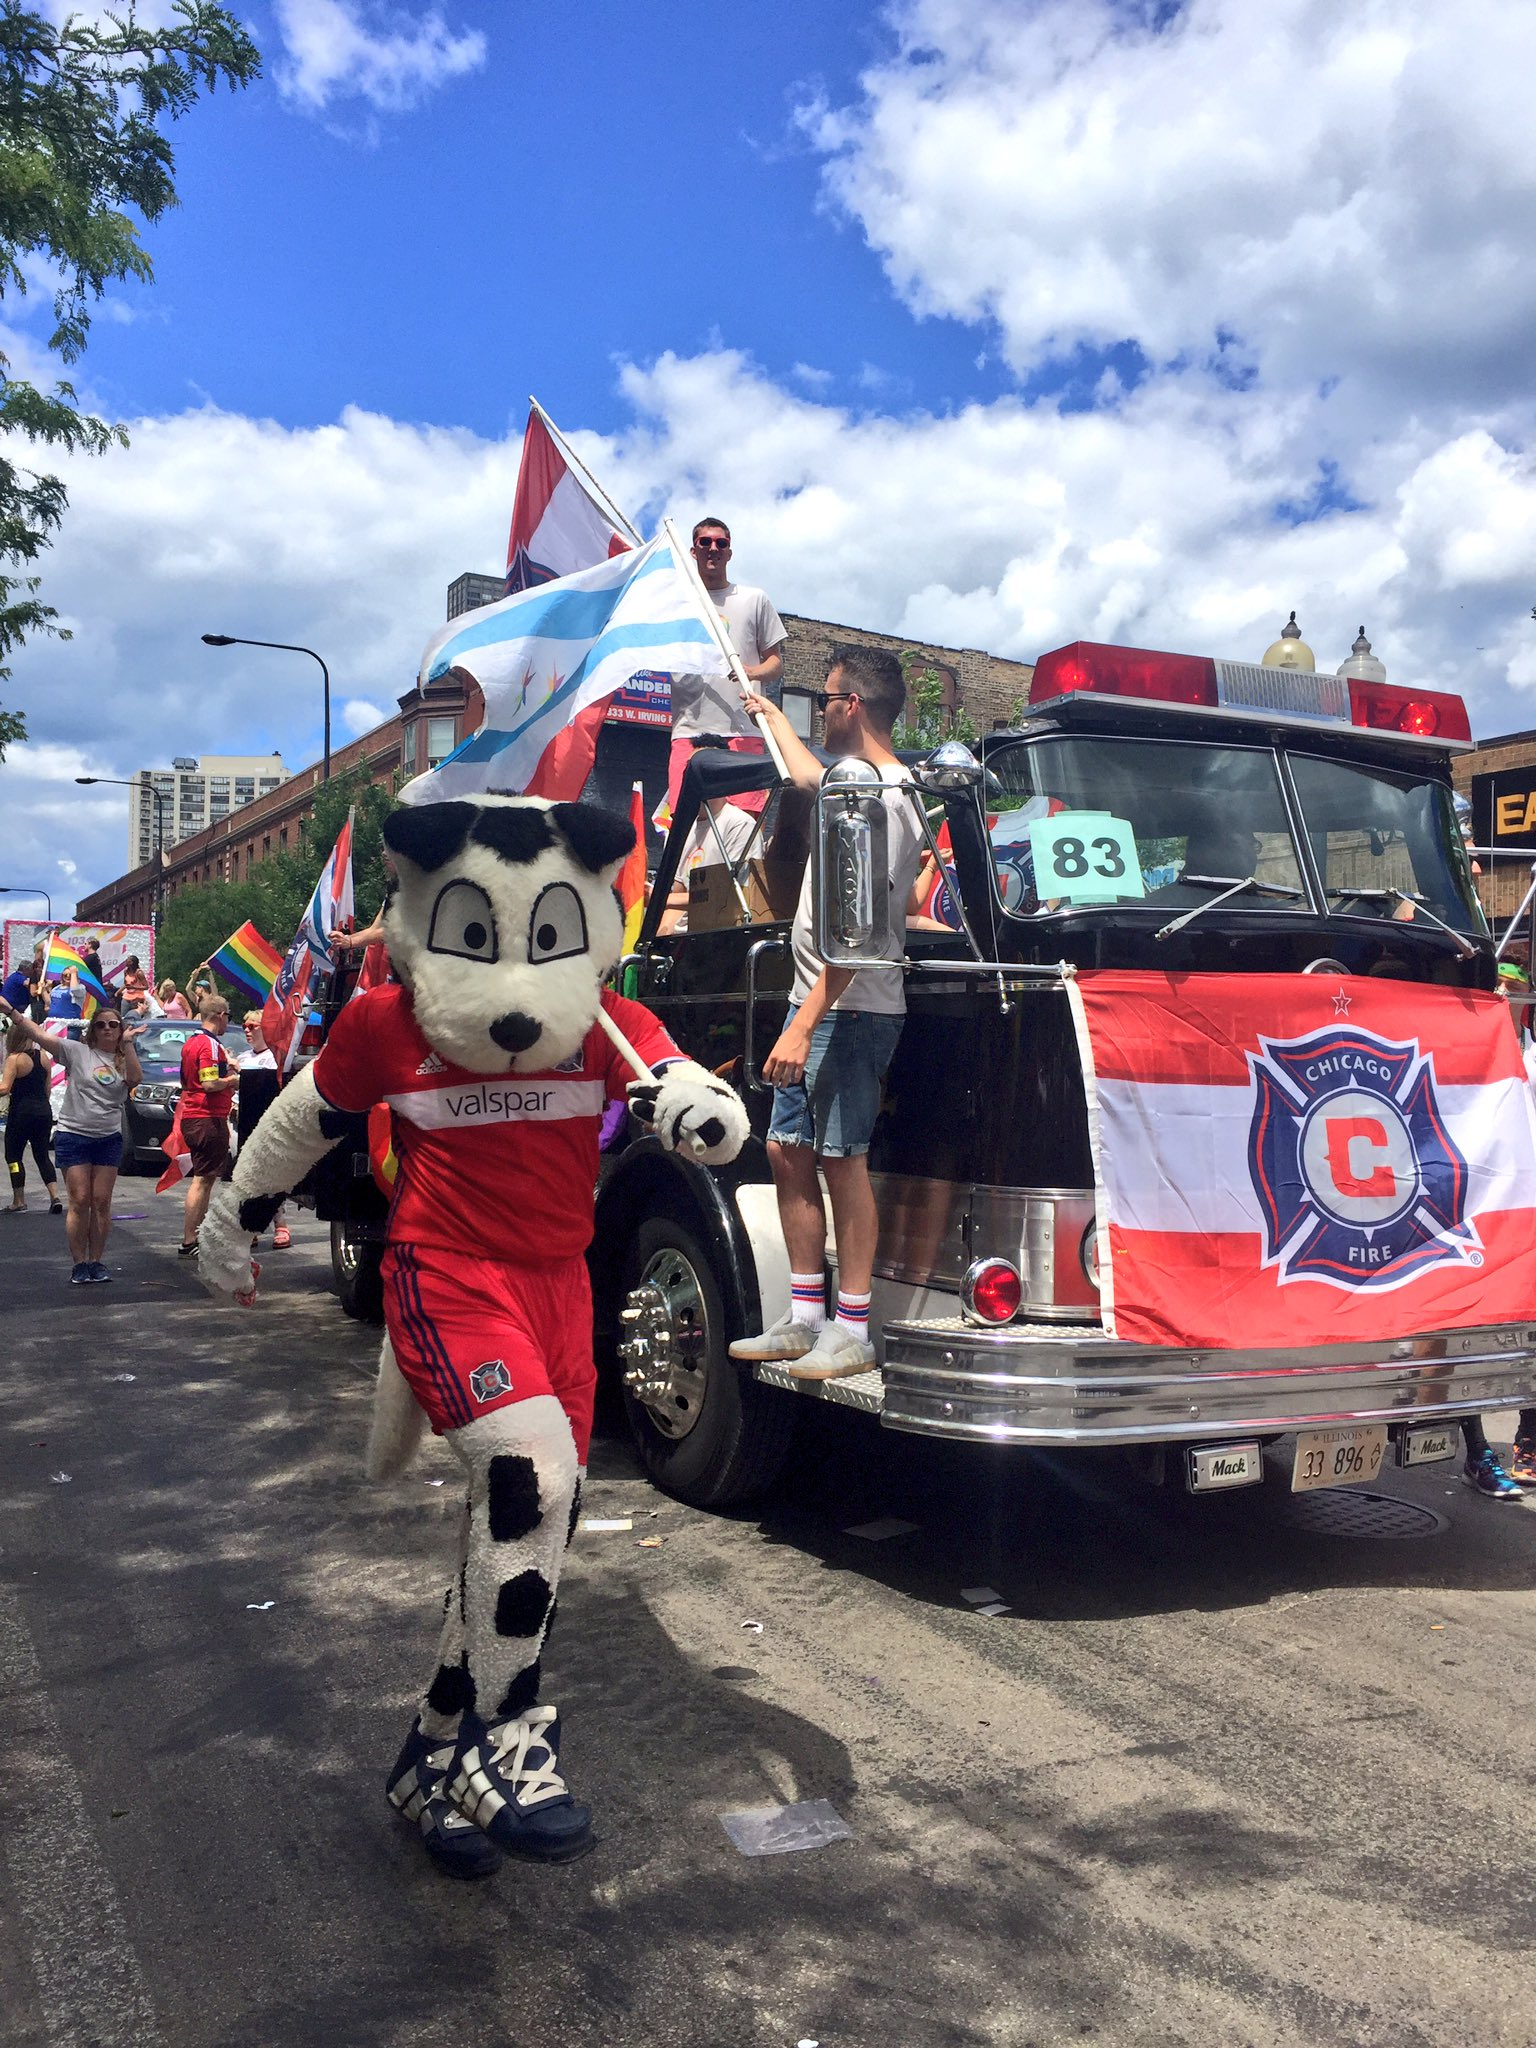 Proud to be out here supporting #Pride2017. Wave to us! #cf97 https://t.co/vGys3fXjic